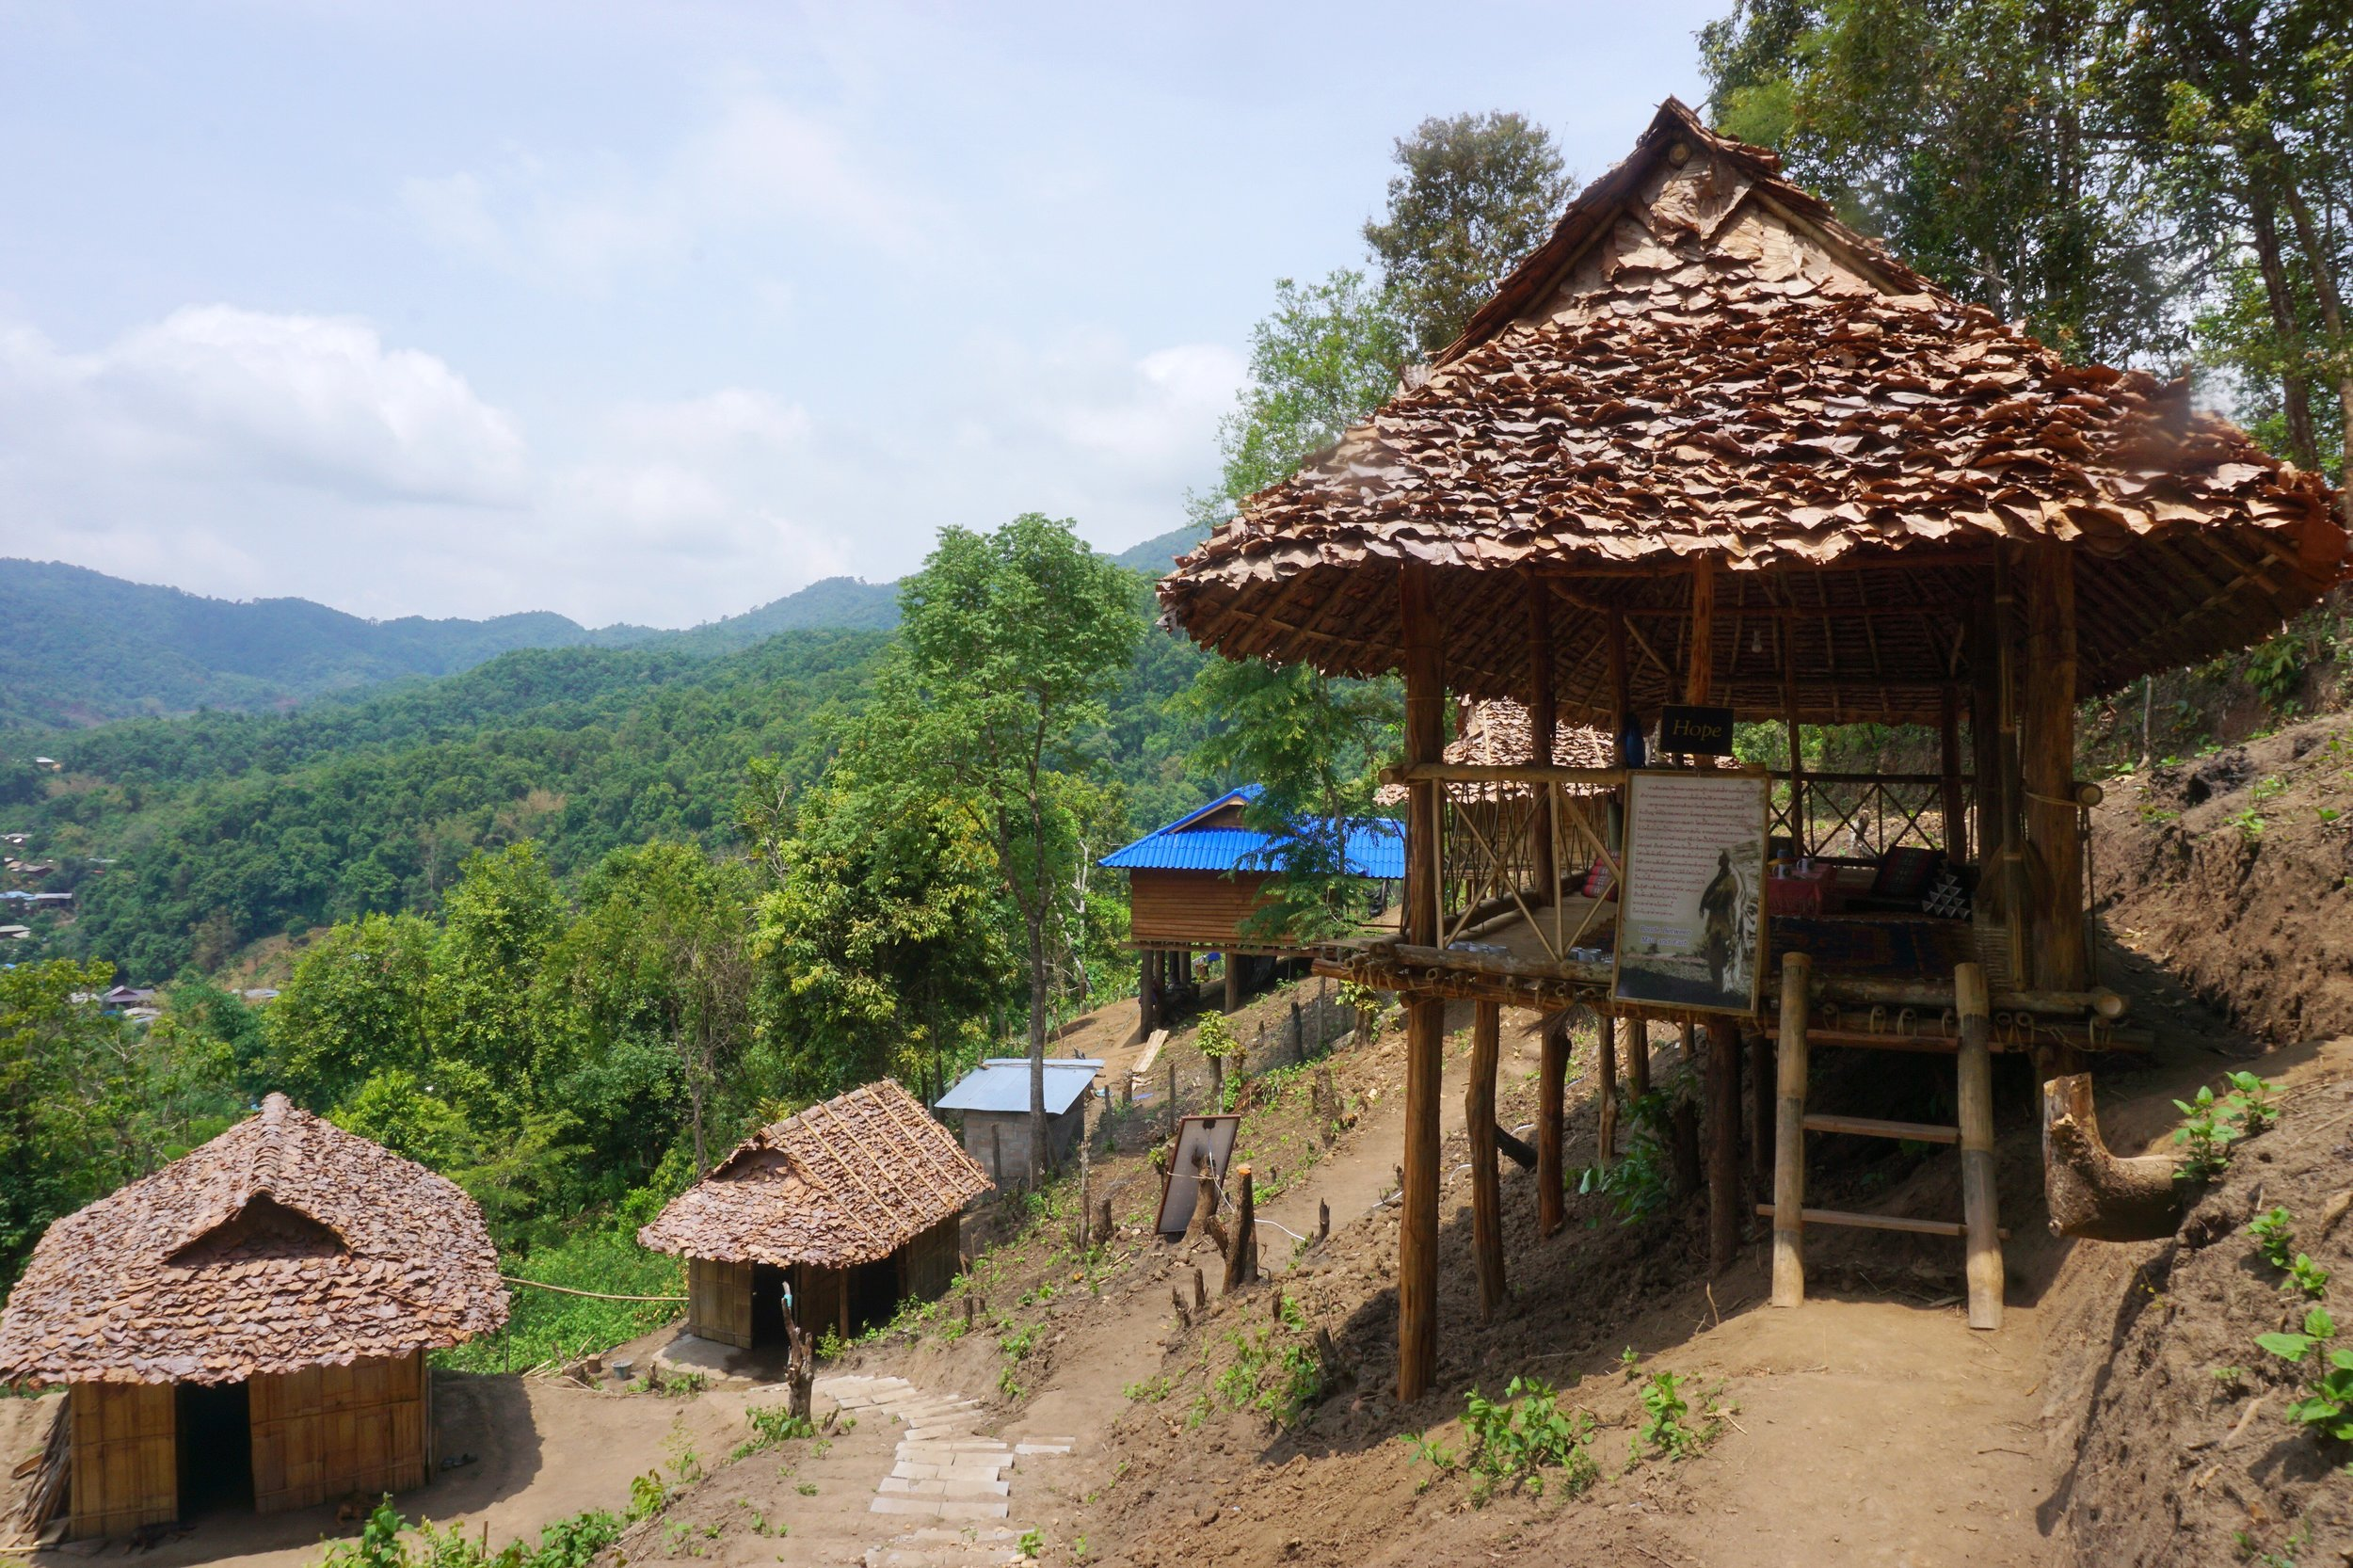 Our project is located high in the beautiful mountains in Northern Thailand.